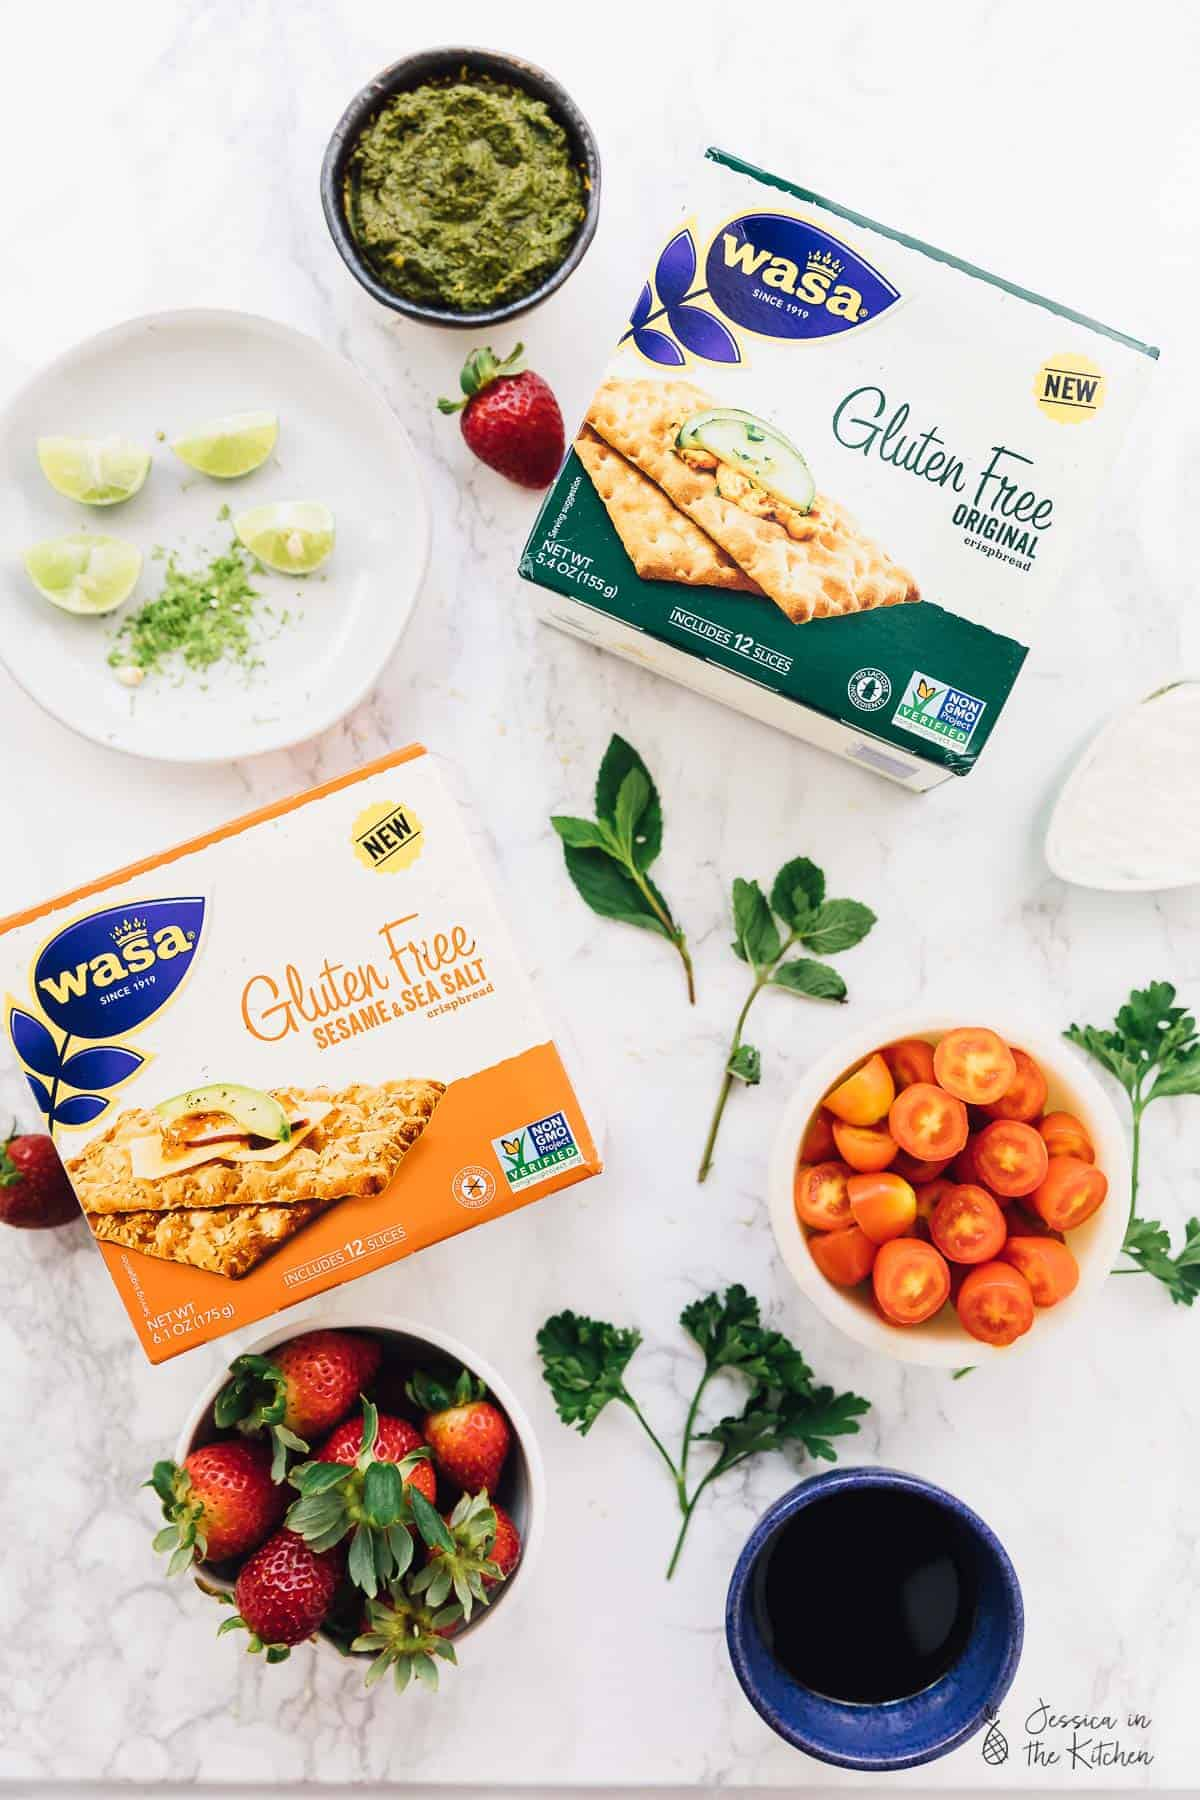 These 3 quick and easy summer appetizers are incredibly simple to prepare! They're made out of delicious spreadable toppings and are 100% gluten free with @wasausa Gluten Free crispbread crackers as the amazing base! The toppings add a variety that is sure to please any snack lover! via https://jessicainthekitchen.com #vegan #SimplySatisfying #SimplyWasa #glutenfree #plantbased